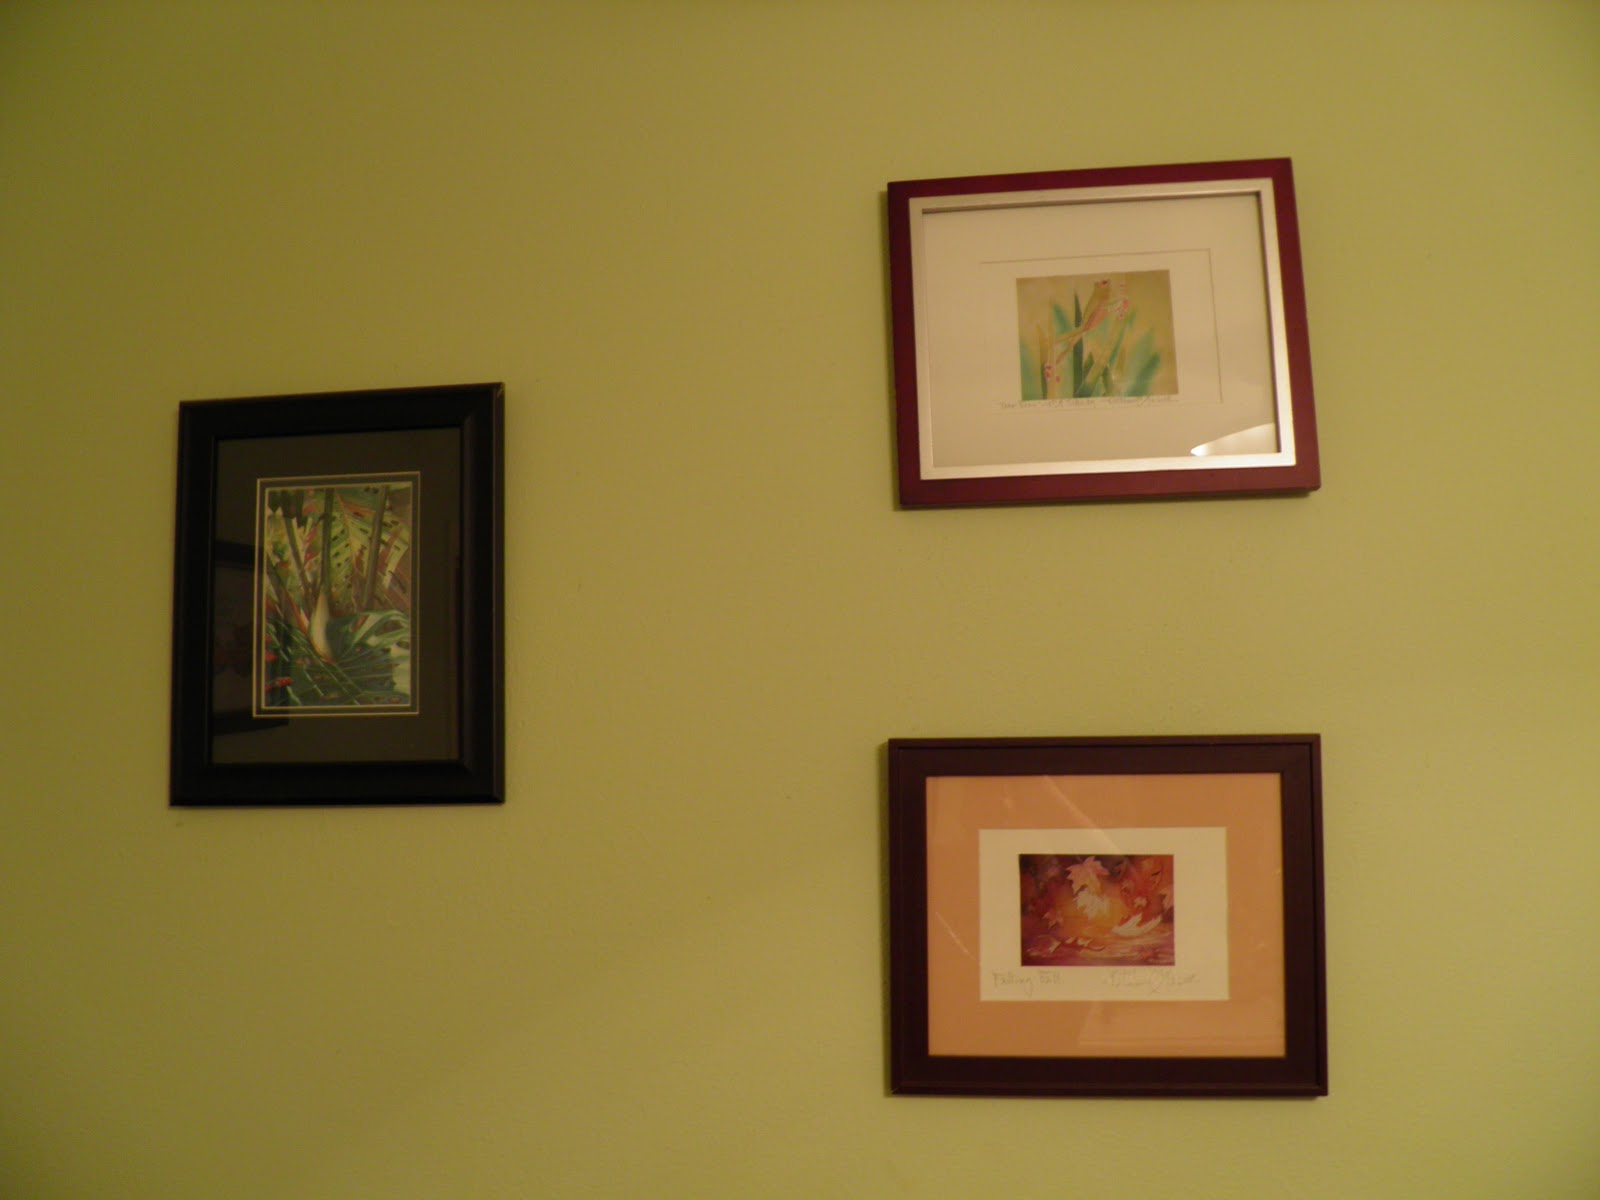 Boun-SEE: Eight Ways to Display Artwork on a Budget